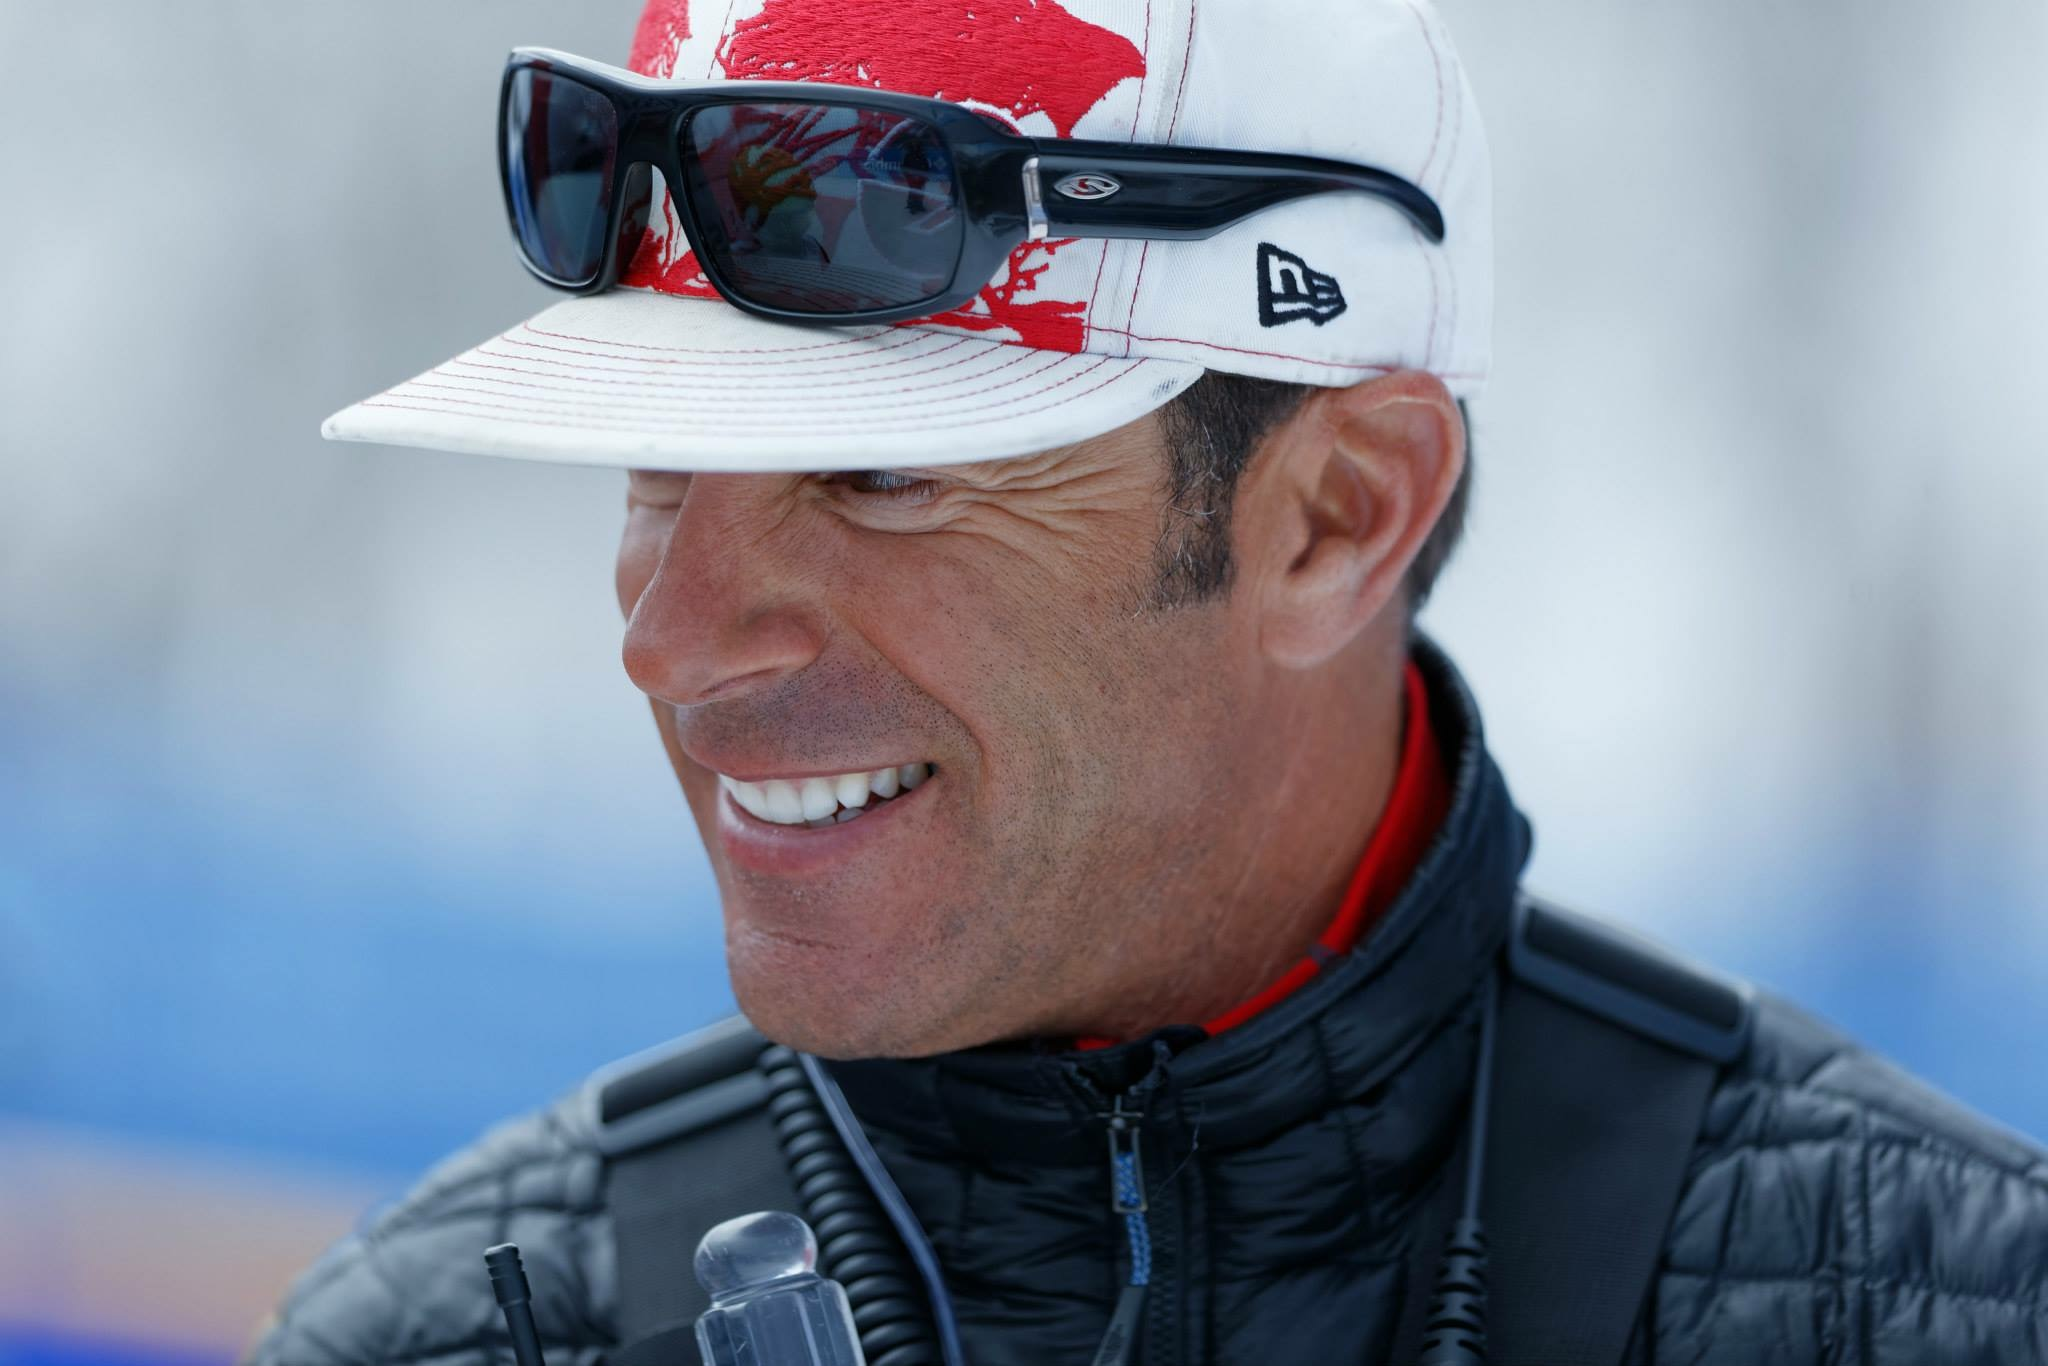 OLYMPIC ROOTS RUN DEEP IN STEAMBOAT – BOBBY ALDIGHIERI